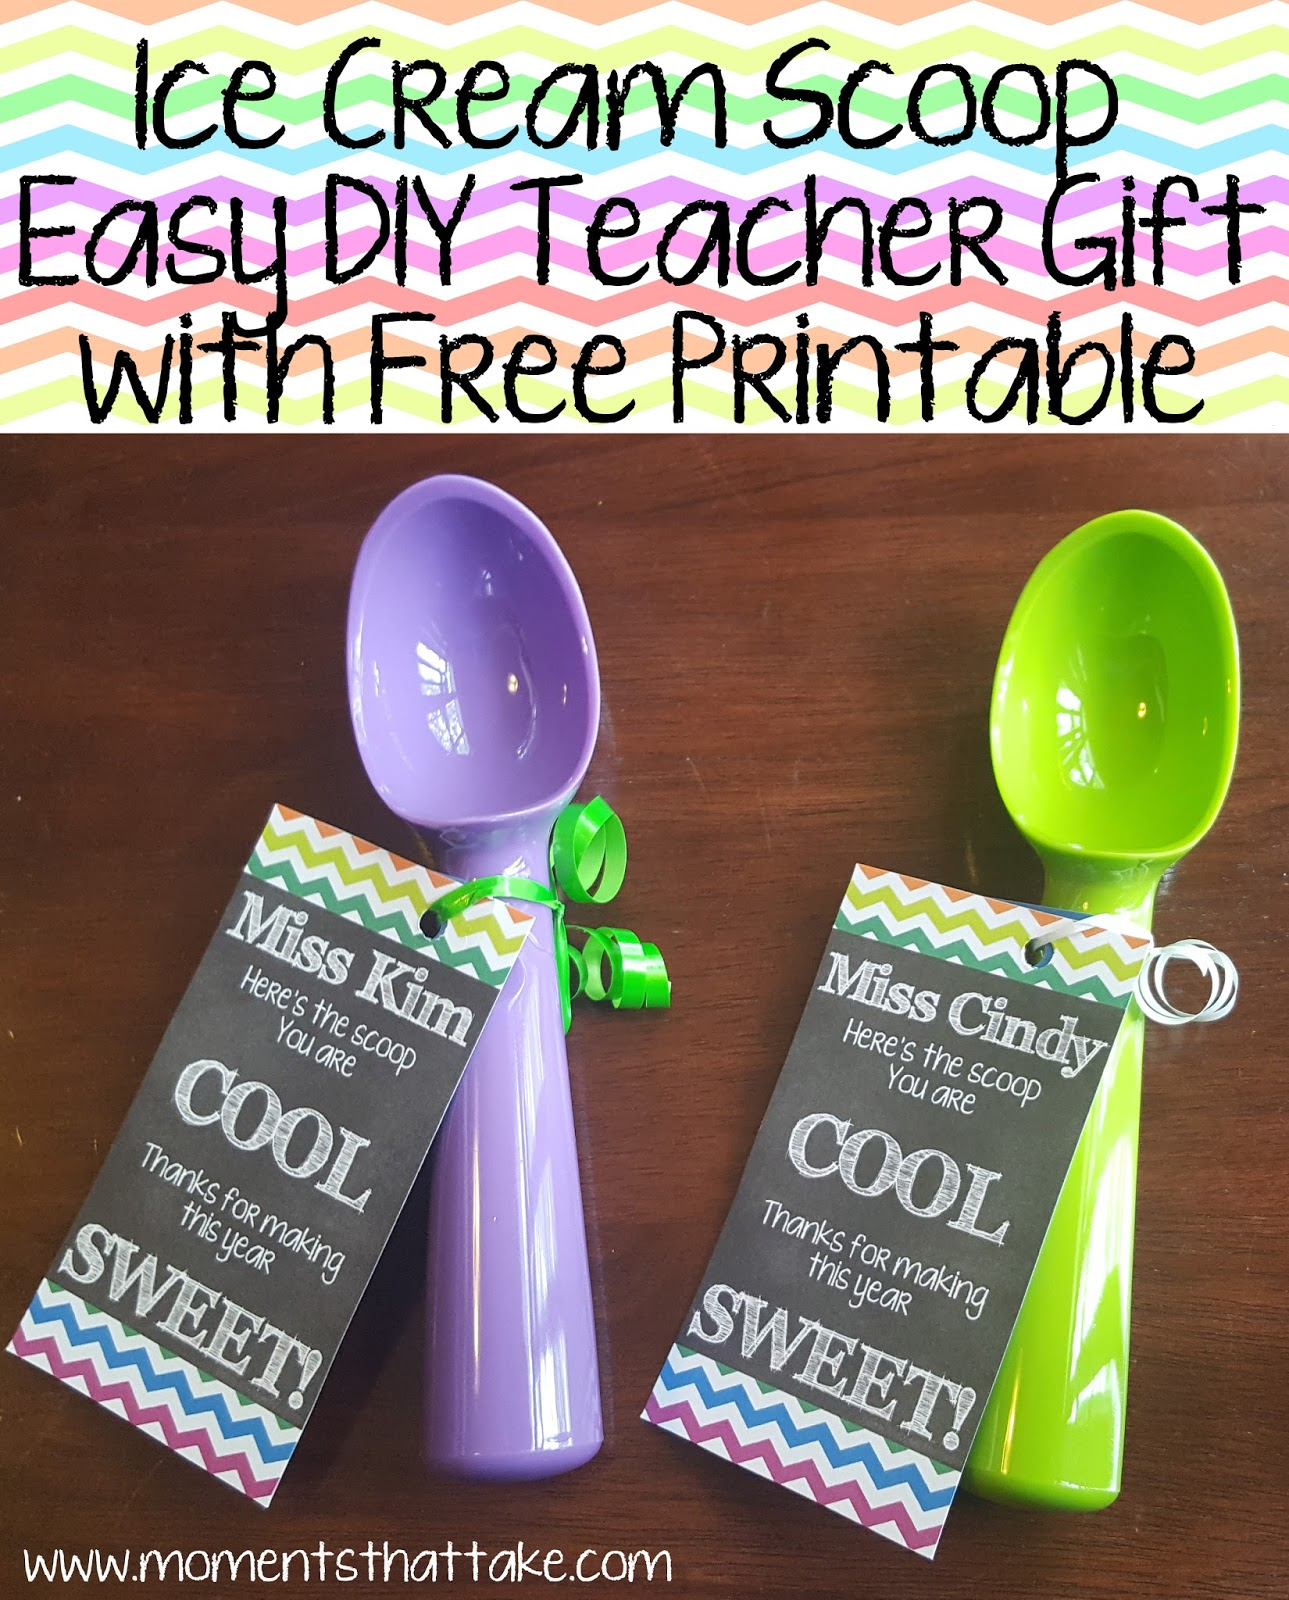 Moments That Take My Breath Away Ice Cream Scoop Easy Diy Teacher